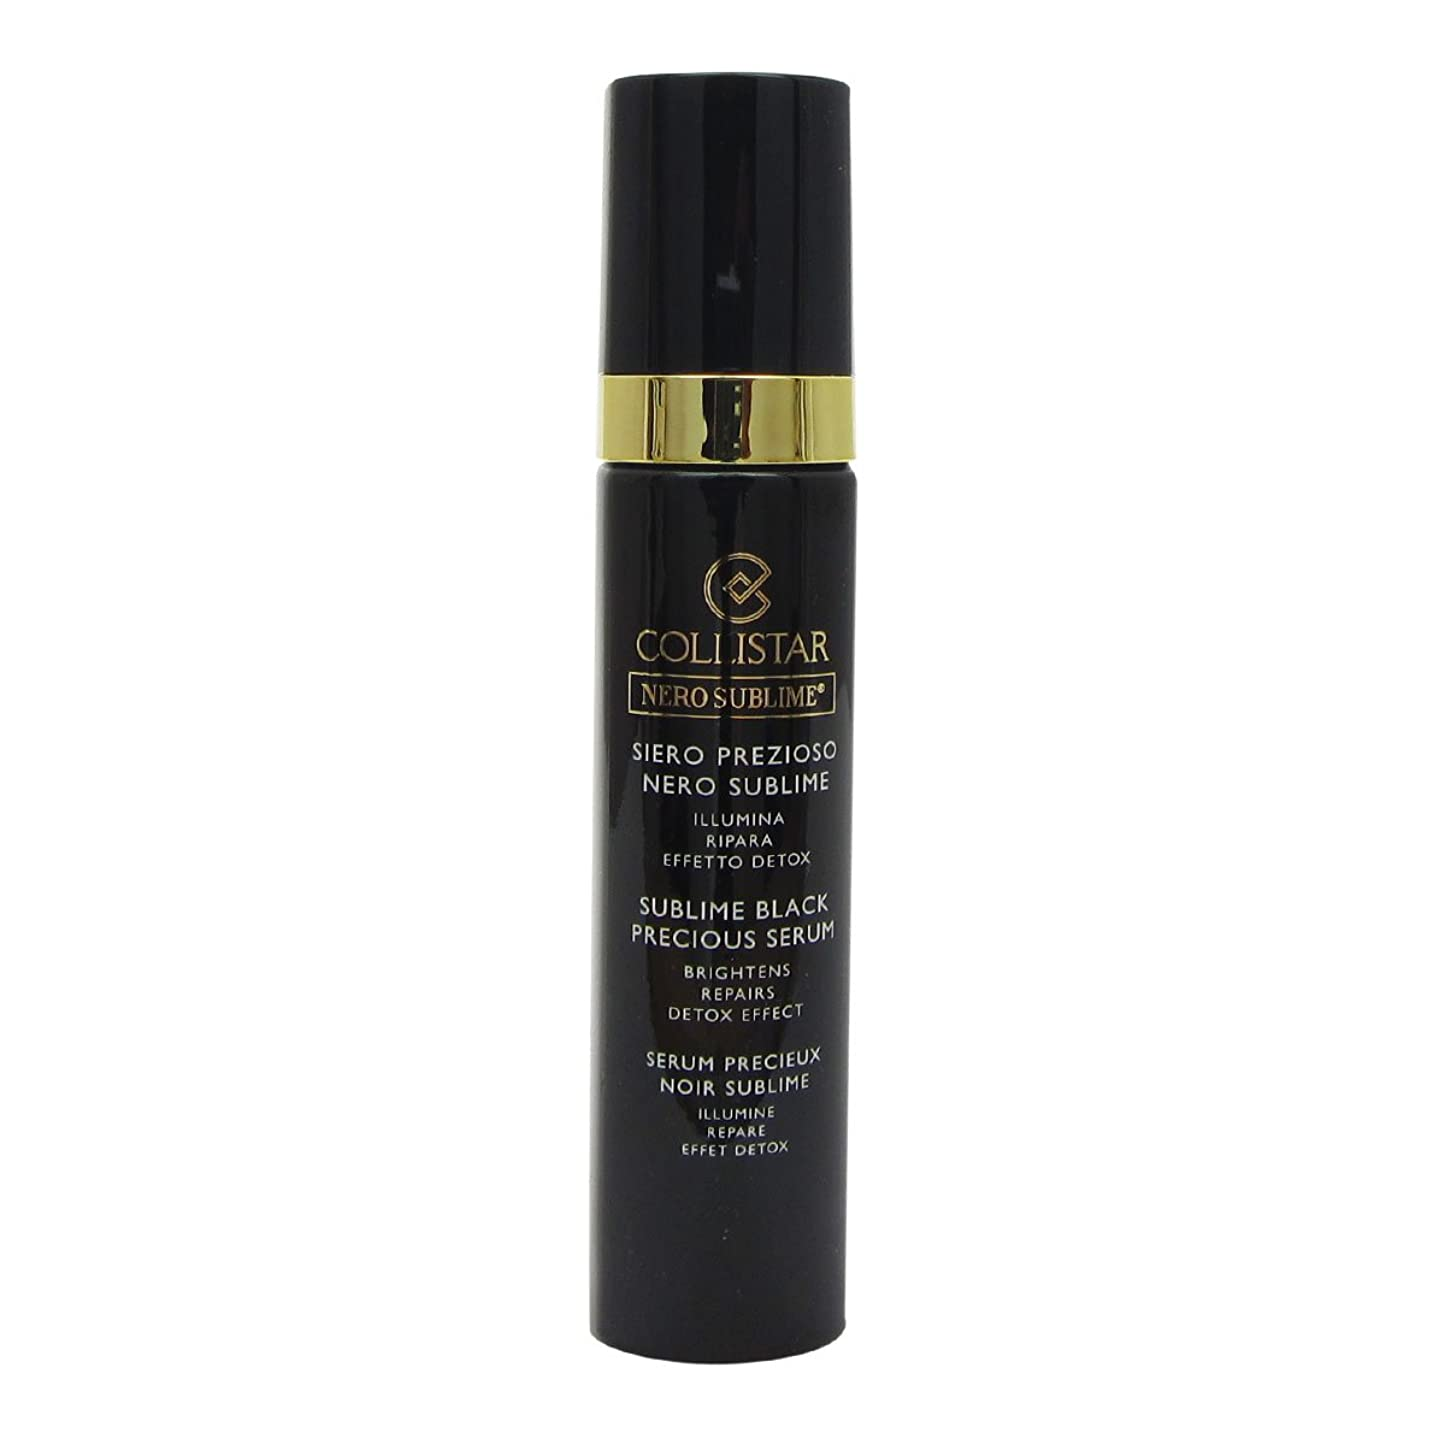 ジョリーはしご被るCollistar Nero Sublime Sublime Black Precious Serum 30ml [並行輸入品]